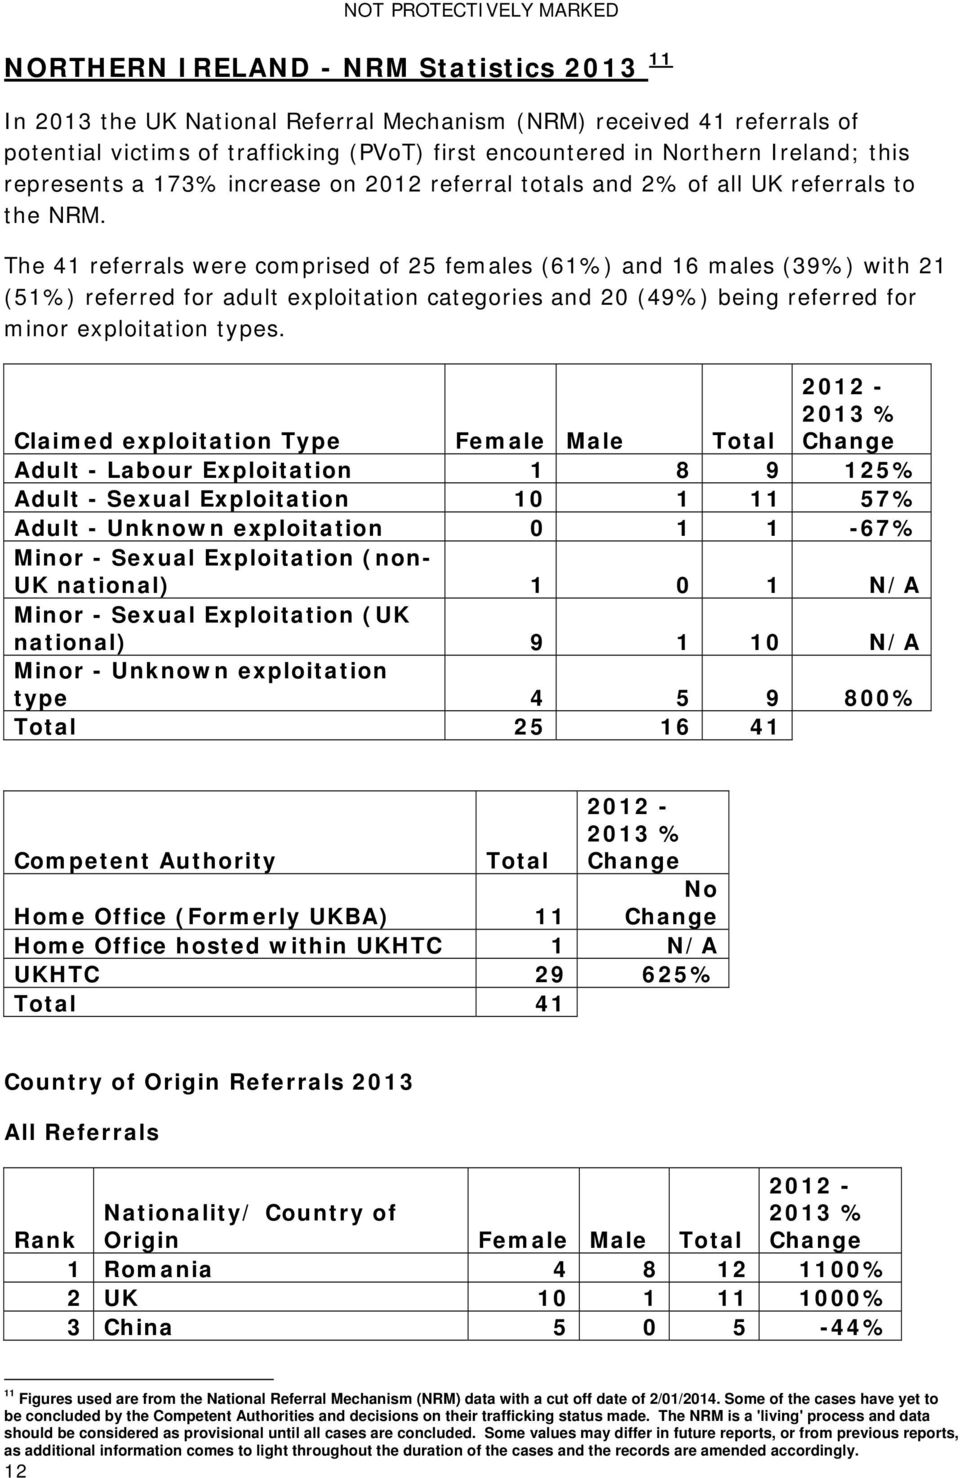 The 41 referrals were comprised of 25 females (61%) and 16 males (39%) with 21 (51%) referred for adult exploitation categories and 20 (49%) being referred for minor exploitation types.